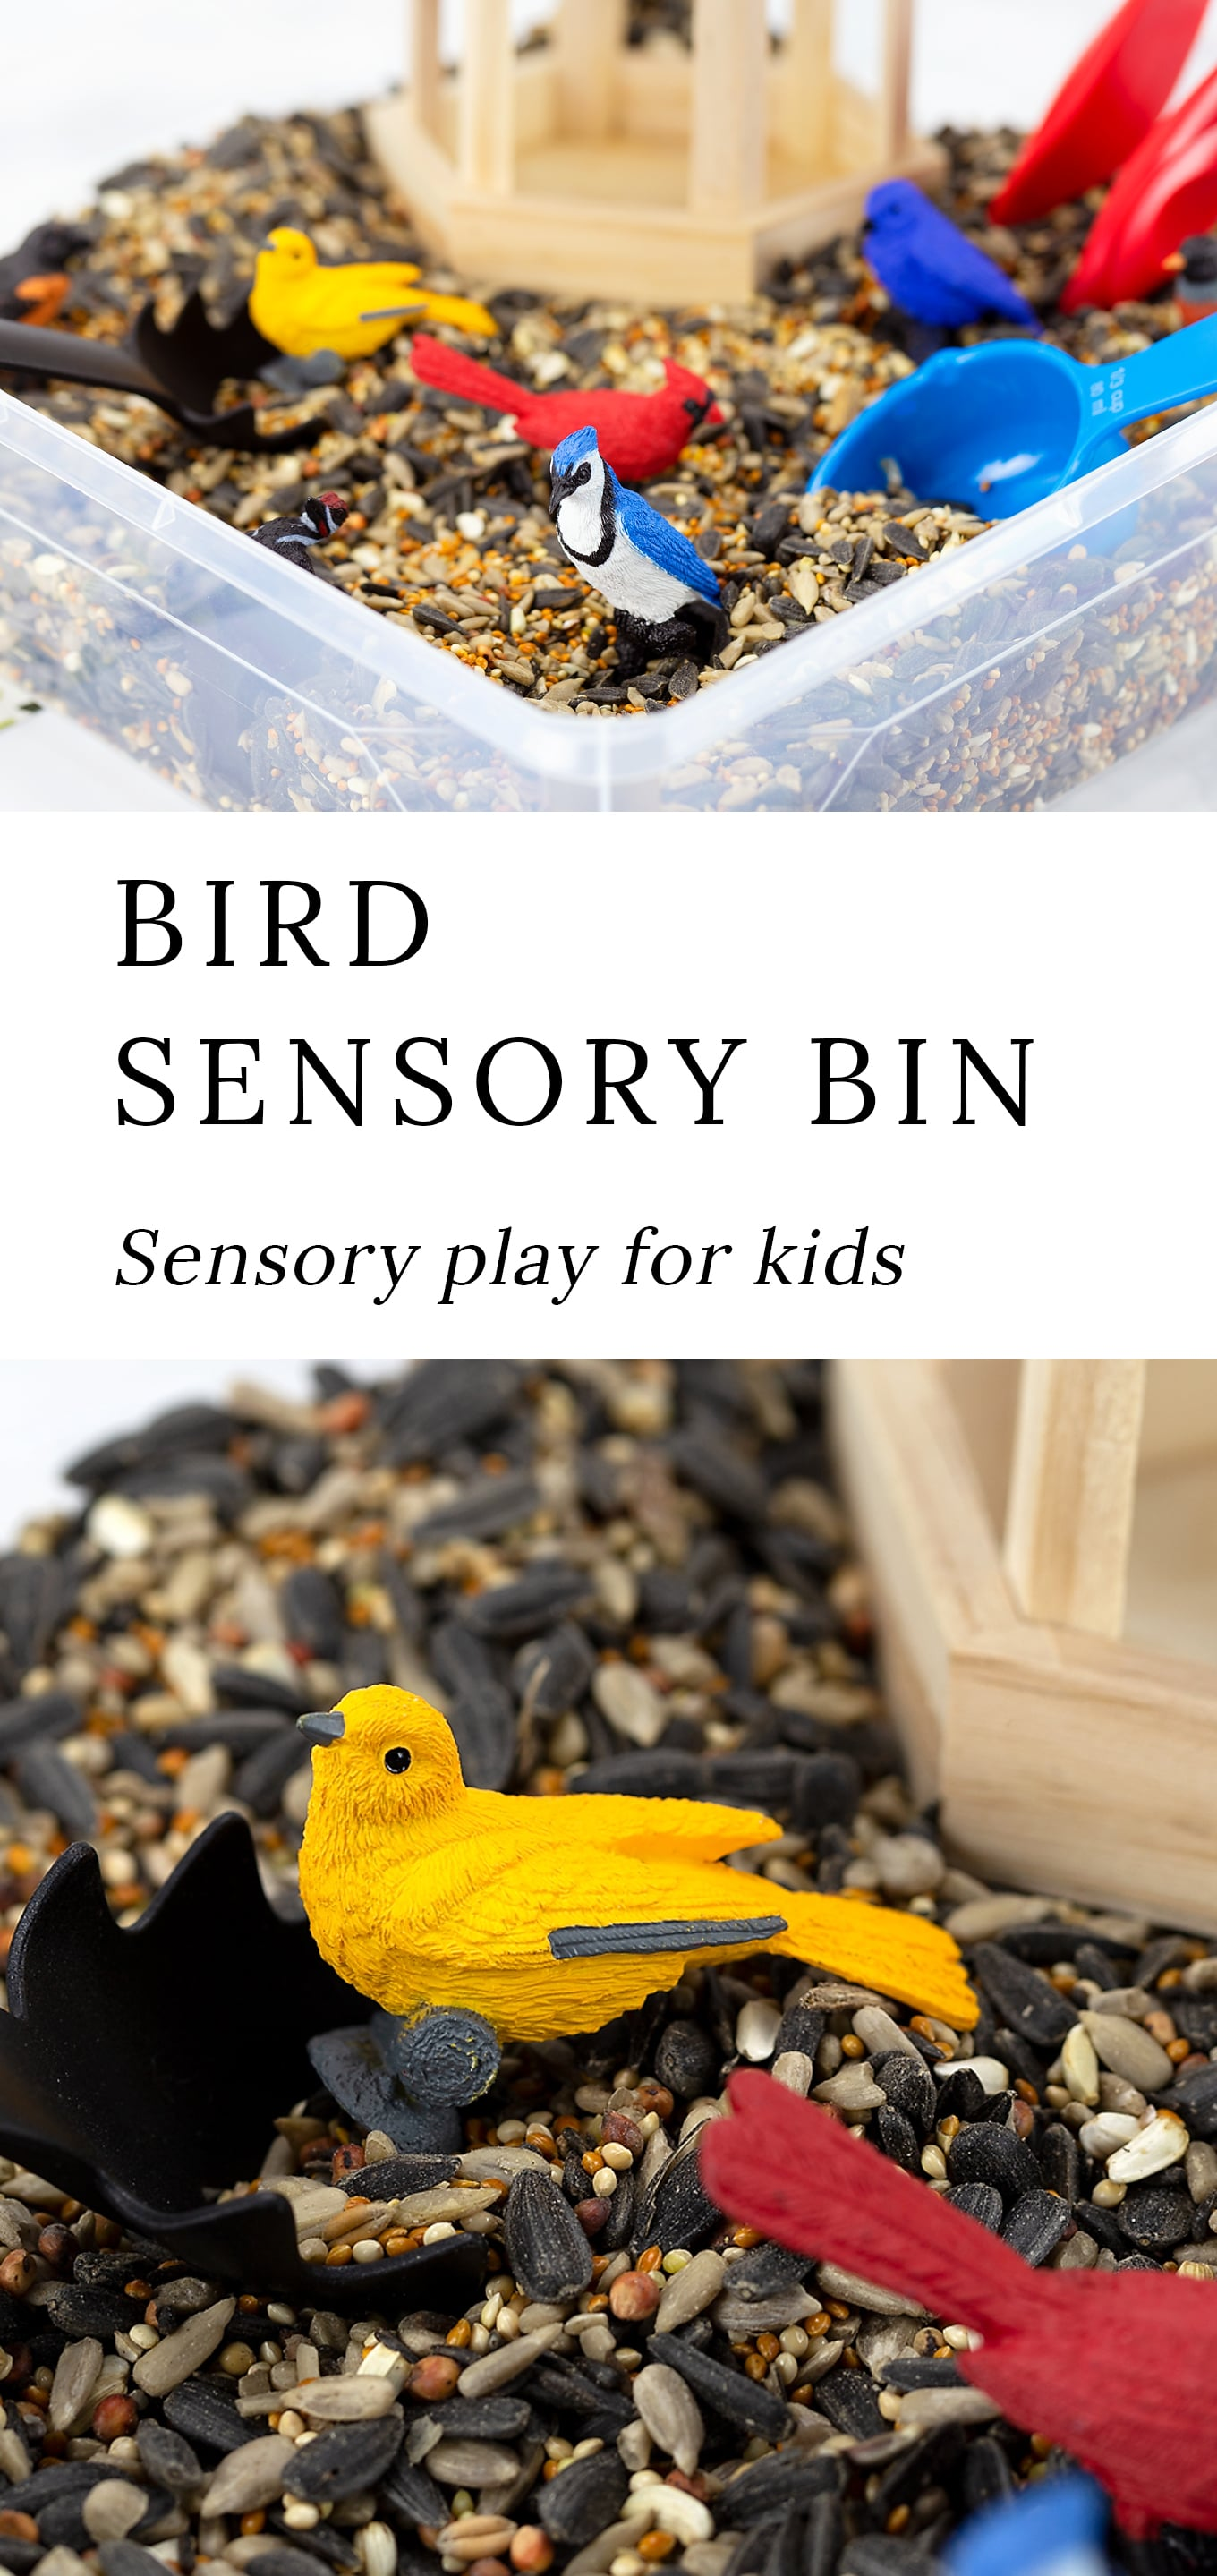 Learn about birds and invite sensory exploration with this fun Bird Sensory Bin for kids. Pair it with bird-themed preschool activities, books, and crafts. #birdsensorybin #preschool #sensorybins via @firefliesandmudpies